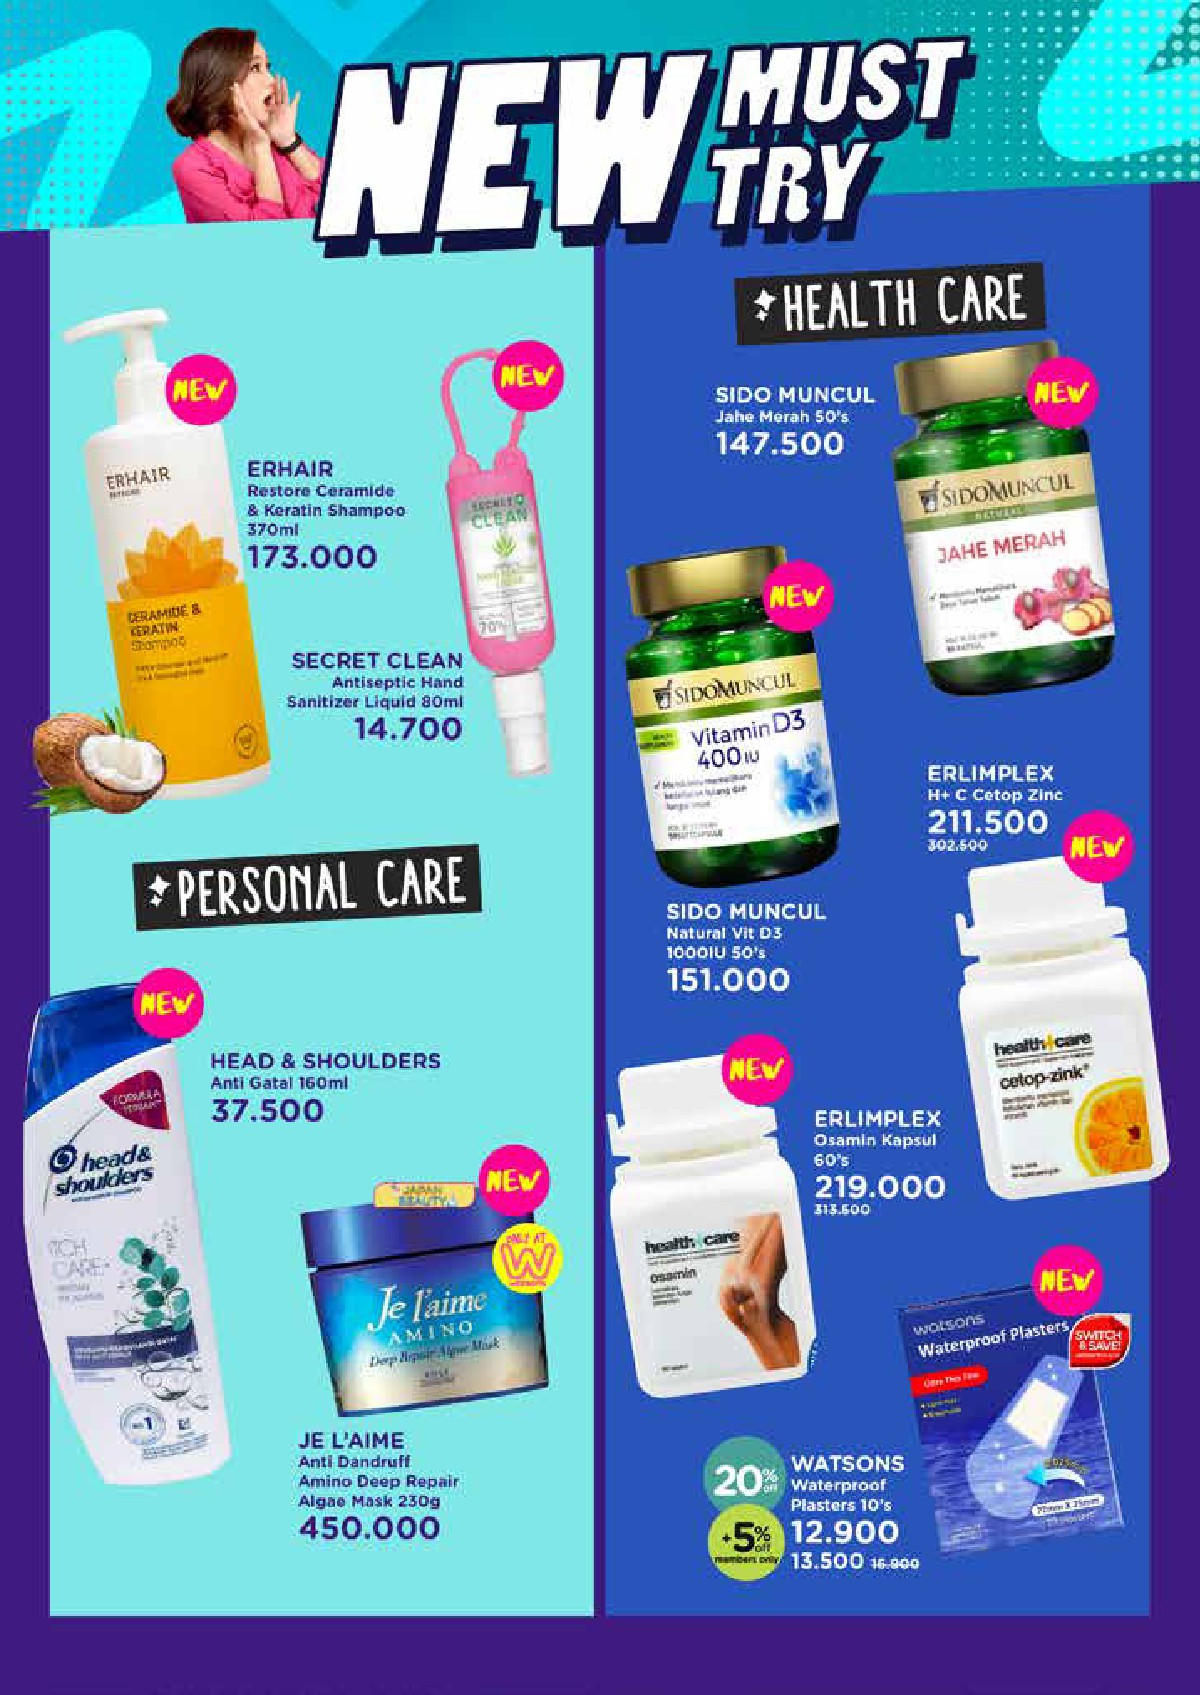 Katalog Belanja Watsons Terbaru - GLOW UP INSIDE OUT | Discount Up to 50% on your favorite products